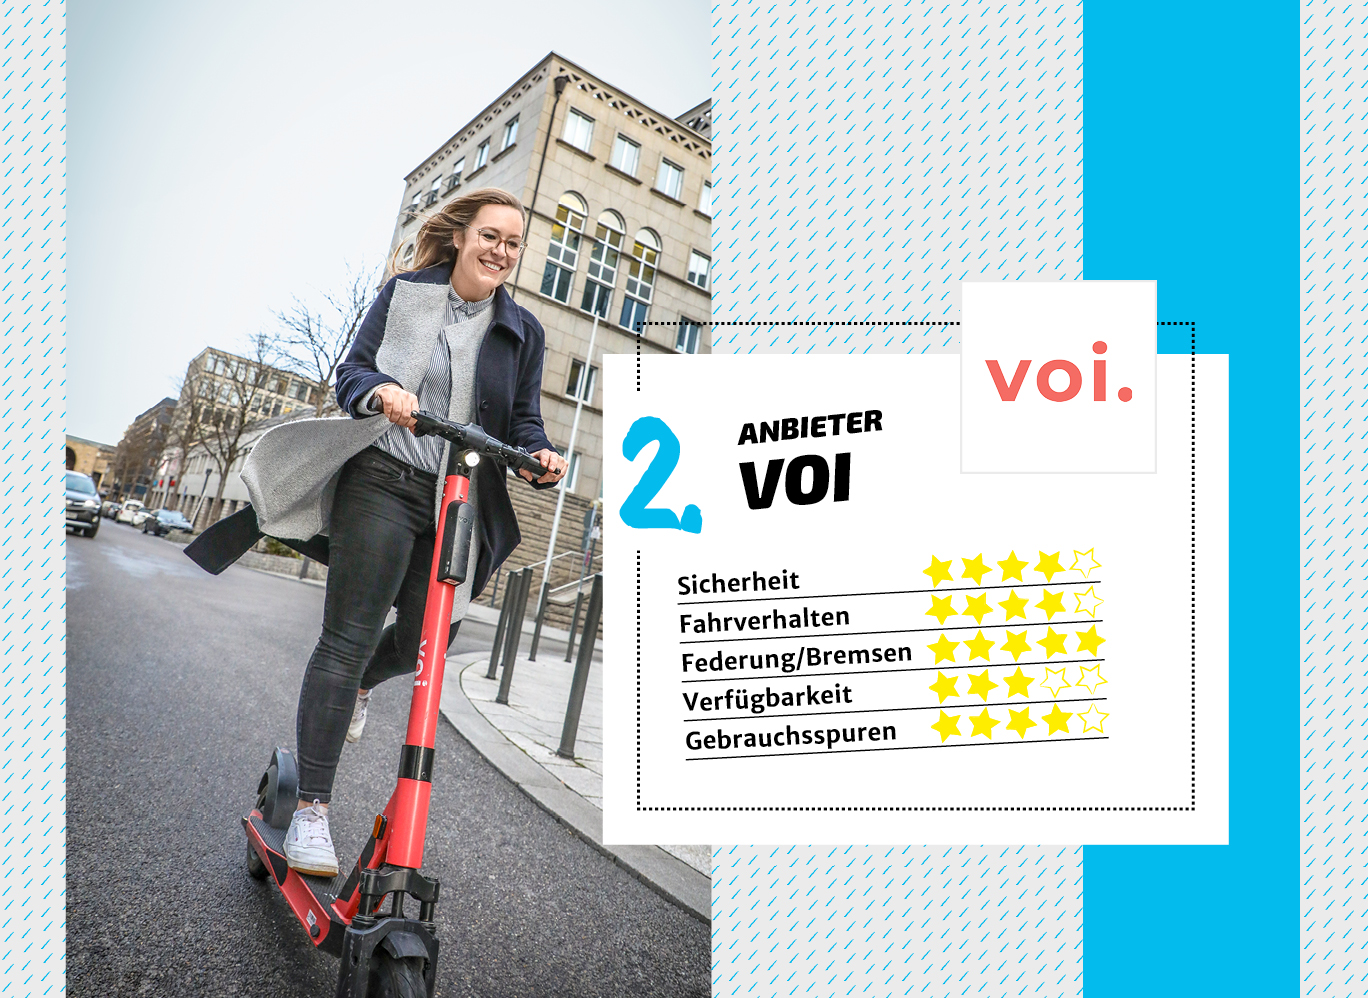 E-Scooter-Anbieter voi